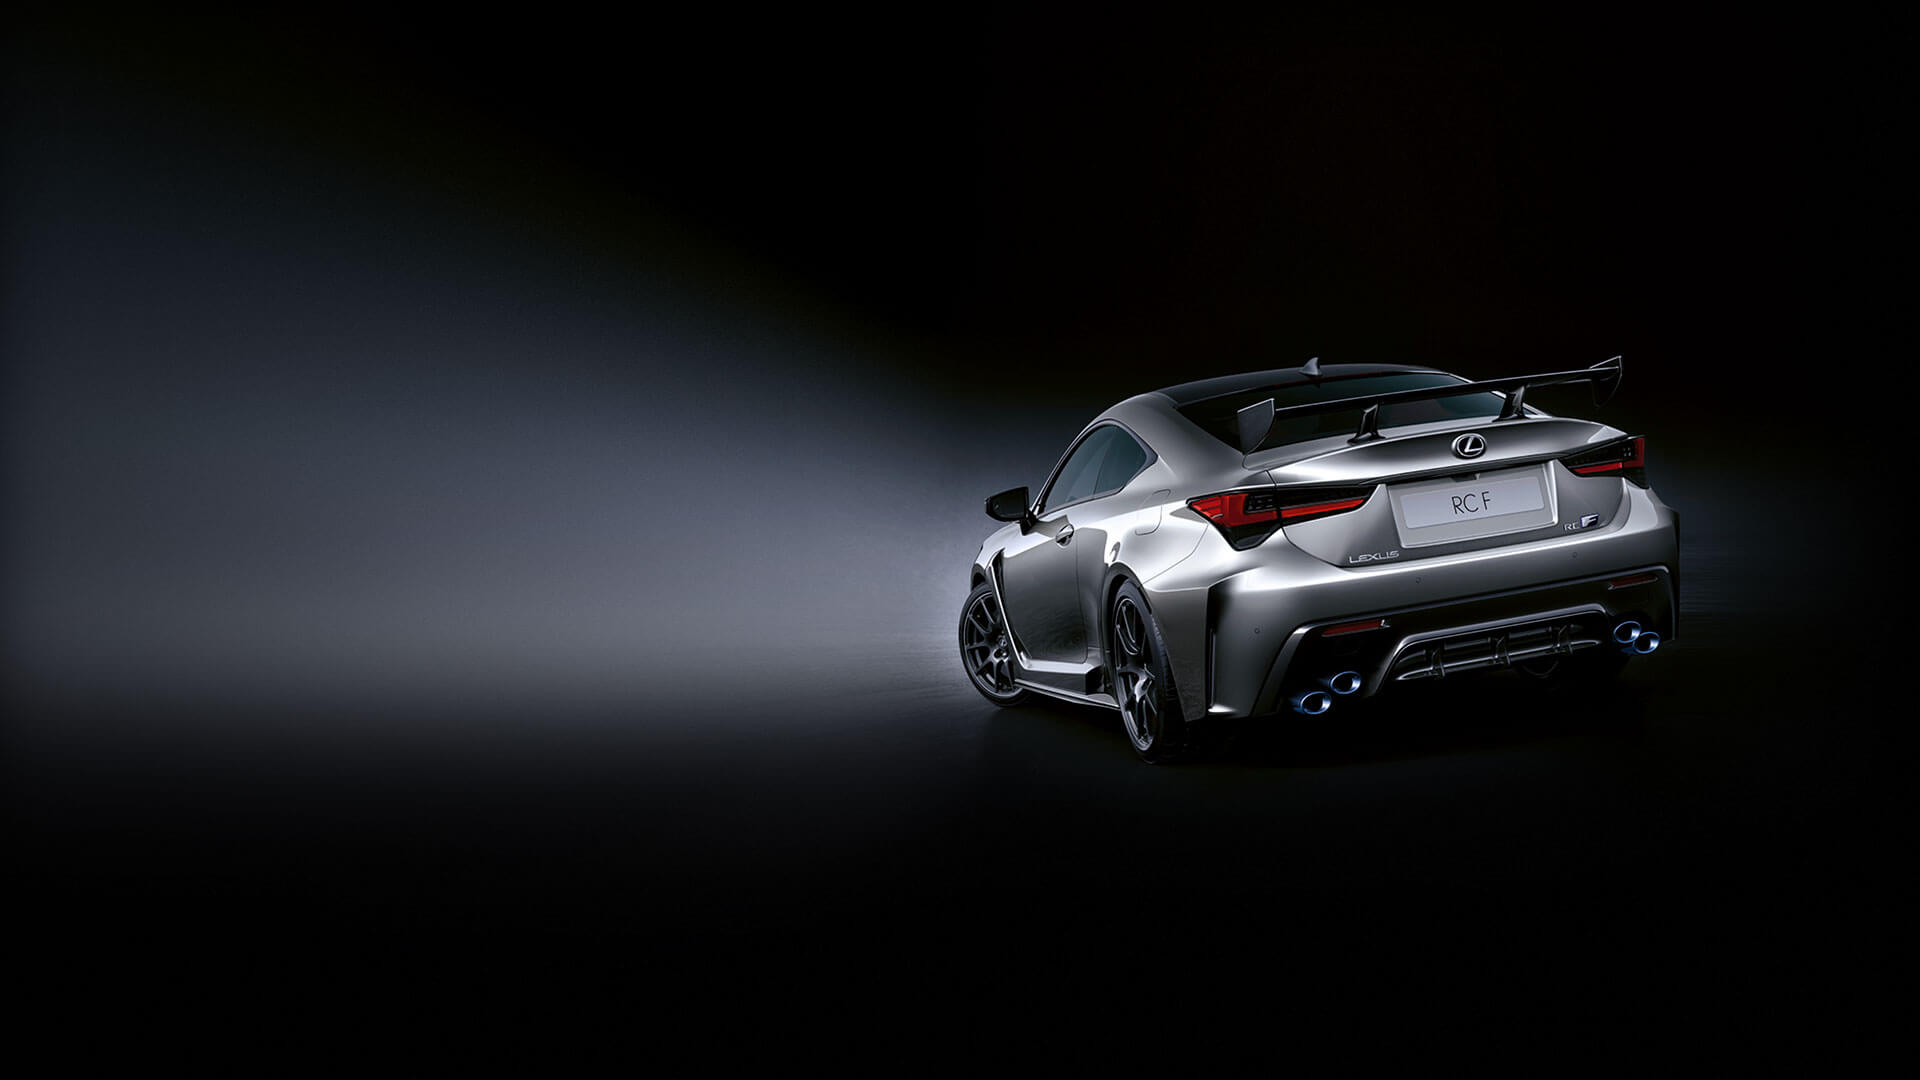 RC F Facts and Figures 1920x1080 Image